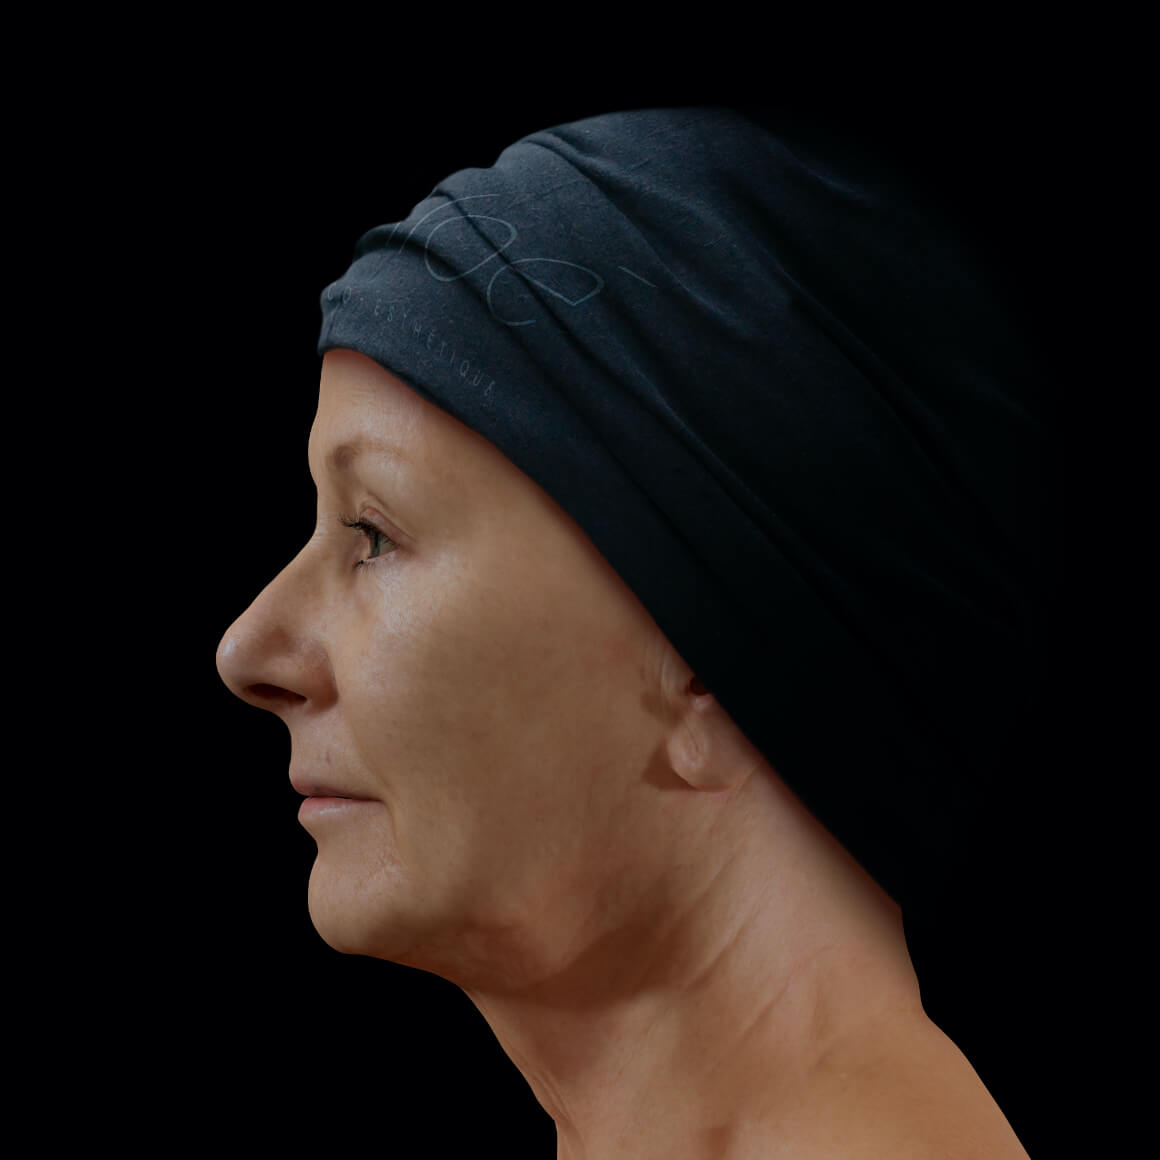 A female patient at Clinique Chloé, positioned sideways, after neuromodulator injections to reduce or even erase wrinkles